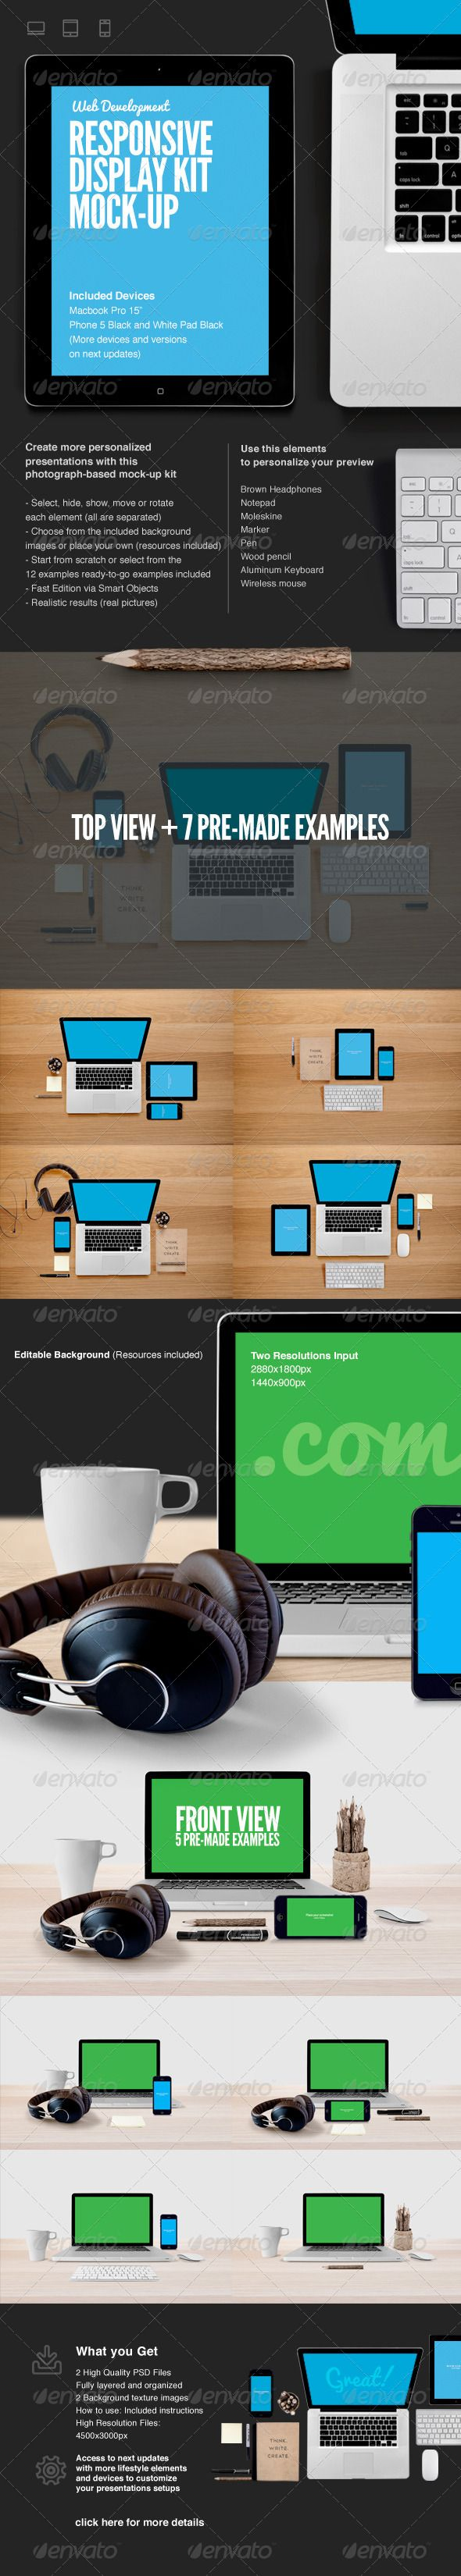 Responsive Web Display Kit MockUp — Photoshop PSD #screen #white • Available here → https://graphicriver.net/item/responsive-web-display-kit-mockup/6619319?ref=pxcr